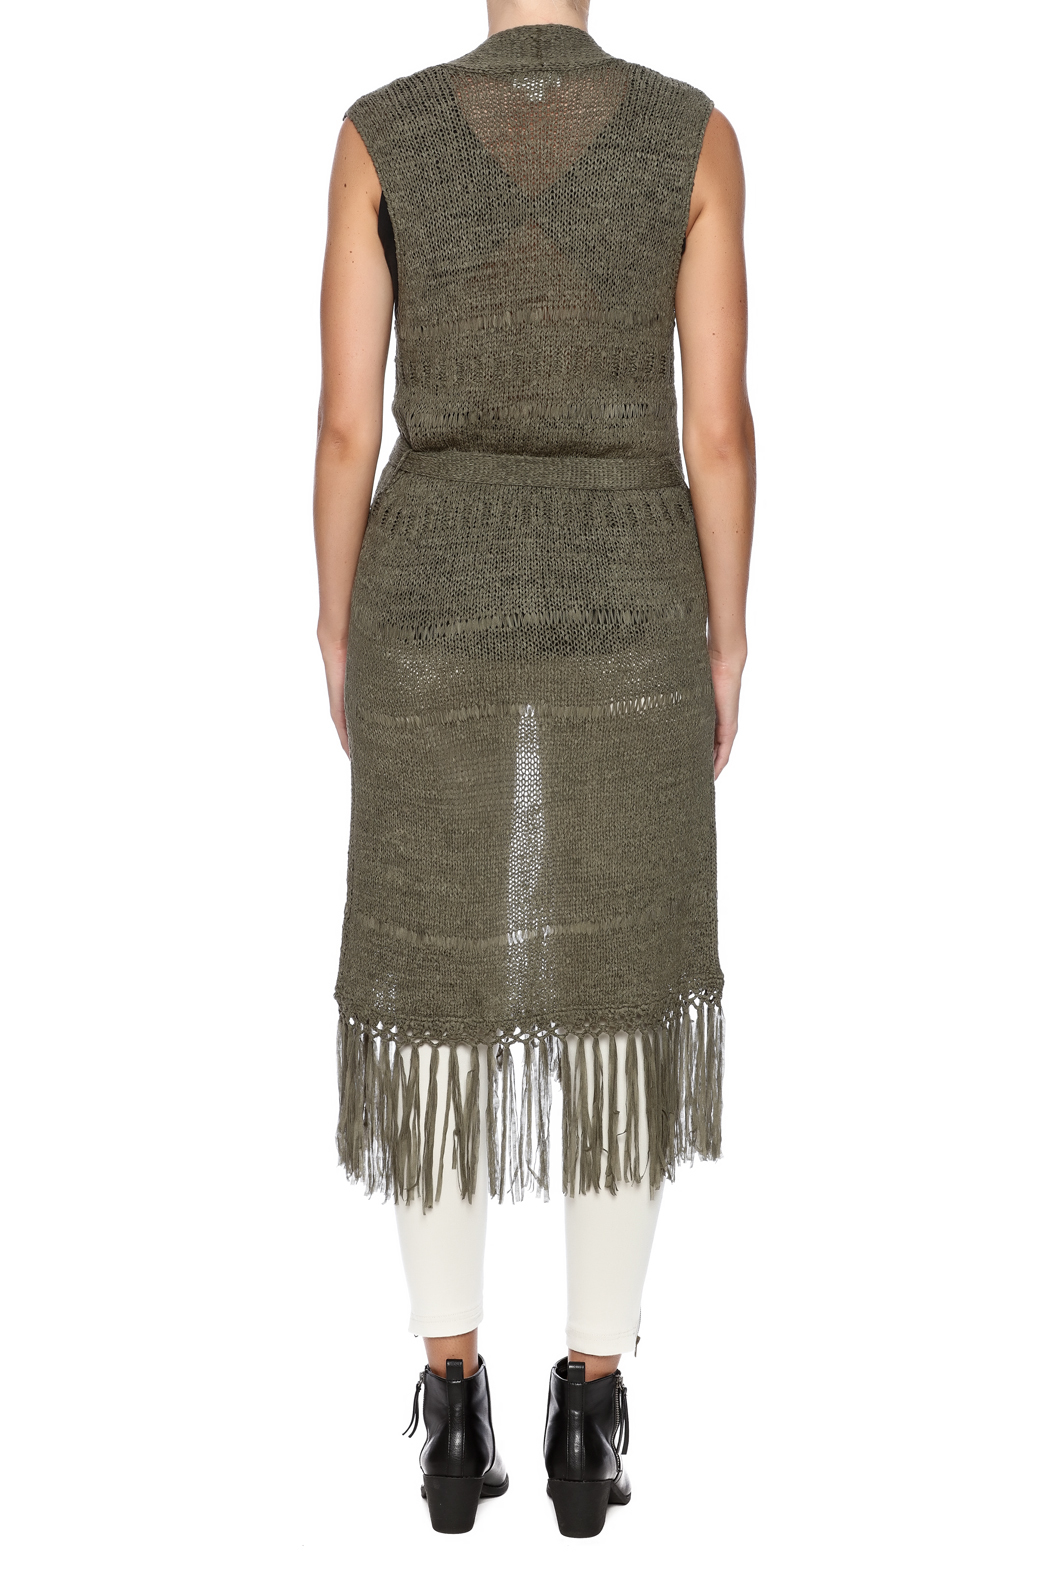 Tribal Jeans Sleeveless Fringe Sweater Vest - Back Cropped Image